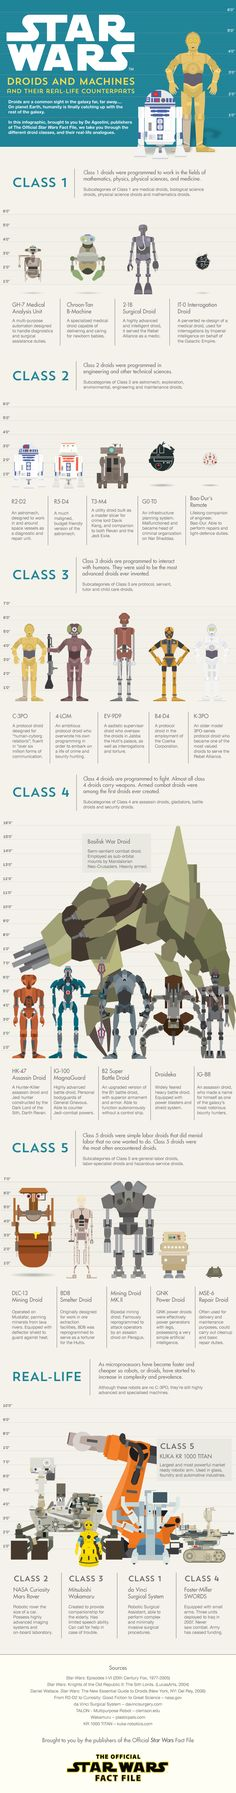 star-wars-infographic-droids-and-machines-and-their-real-life-counterparts